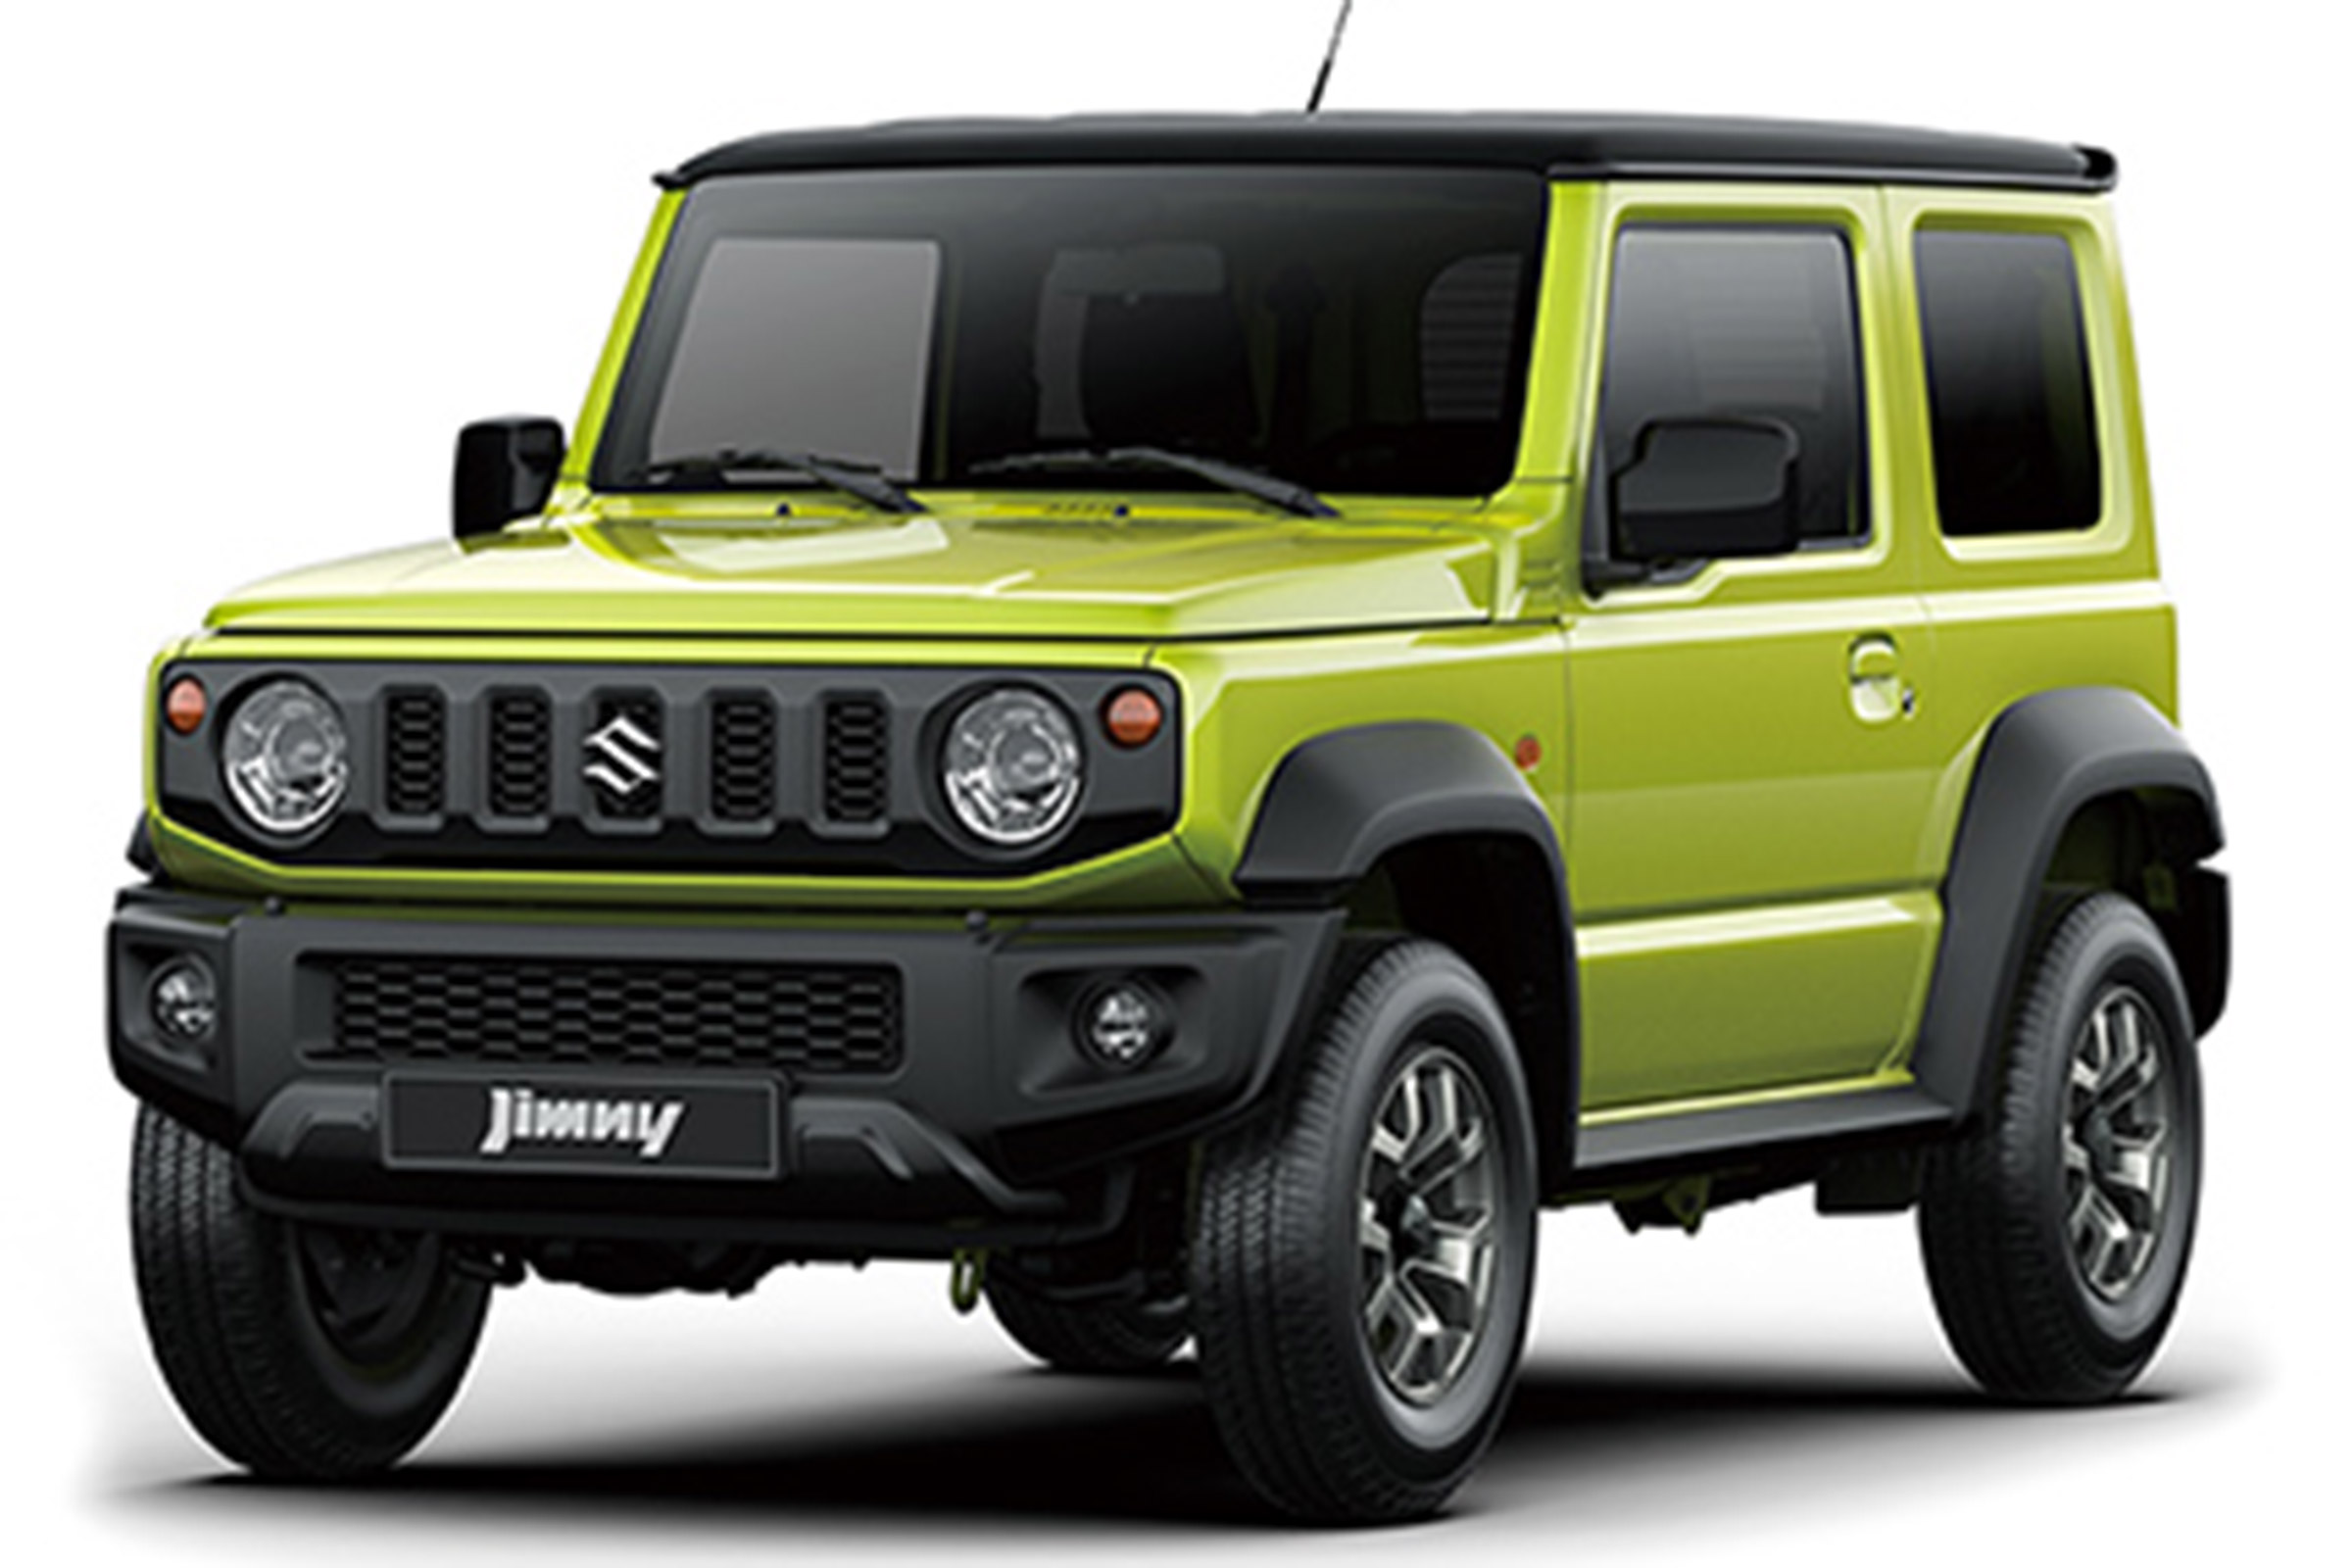 33 All New 2020 Suzuki Jimny Model Release Date